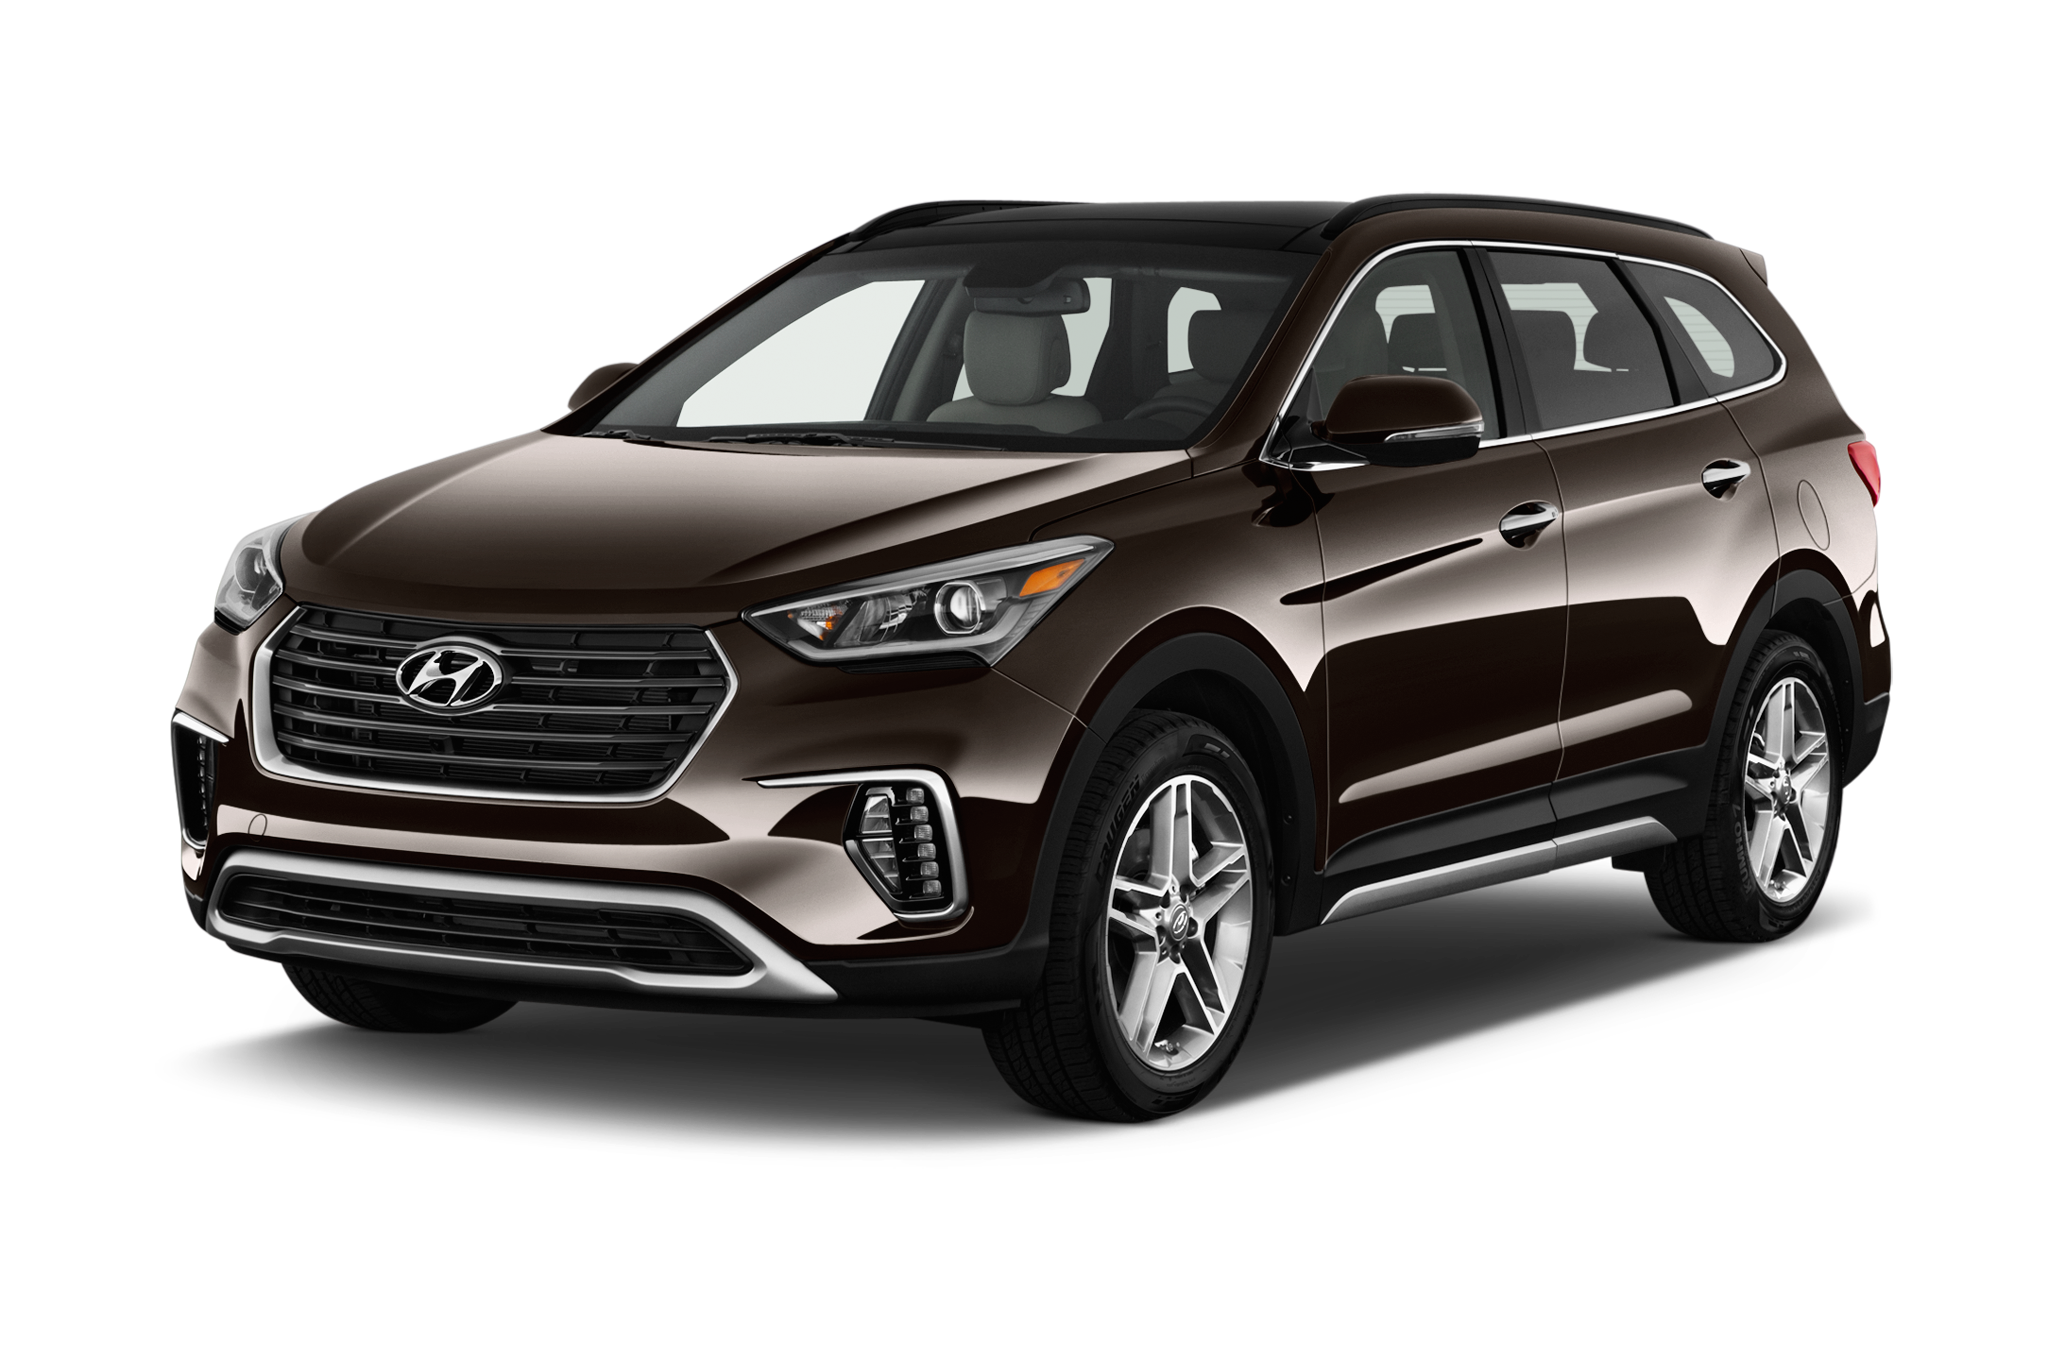 2017 hyundai santa fe se fwd pricing msn autos. Black Bedroom Furniture Sets. Home Design Ideas